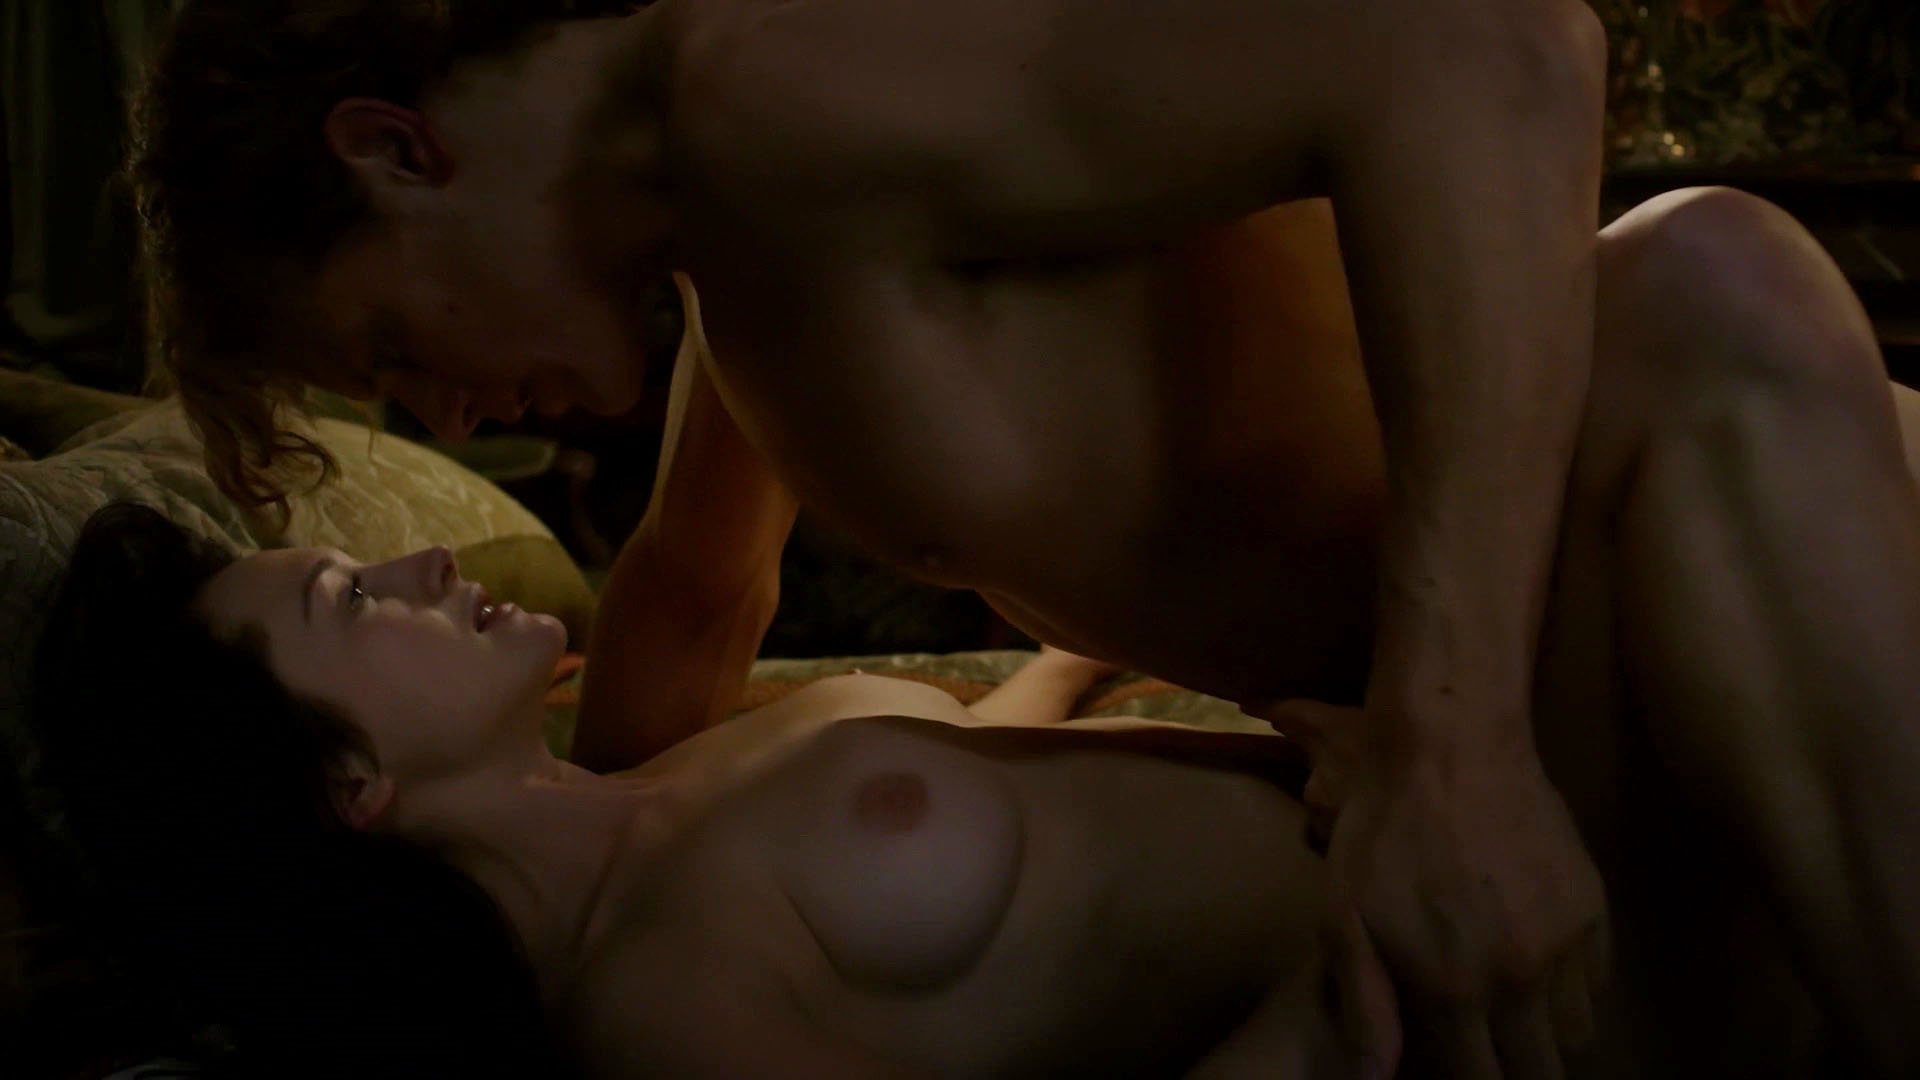 Hannah James nude - Outlander s03e04 (2017)